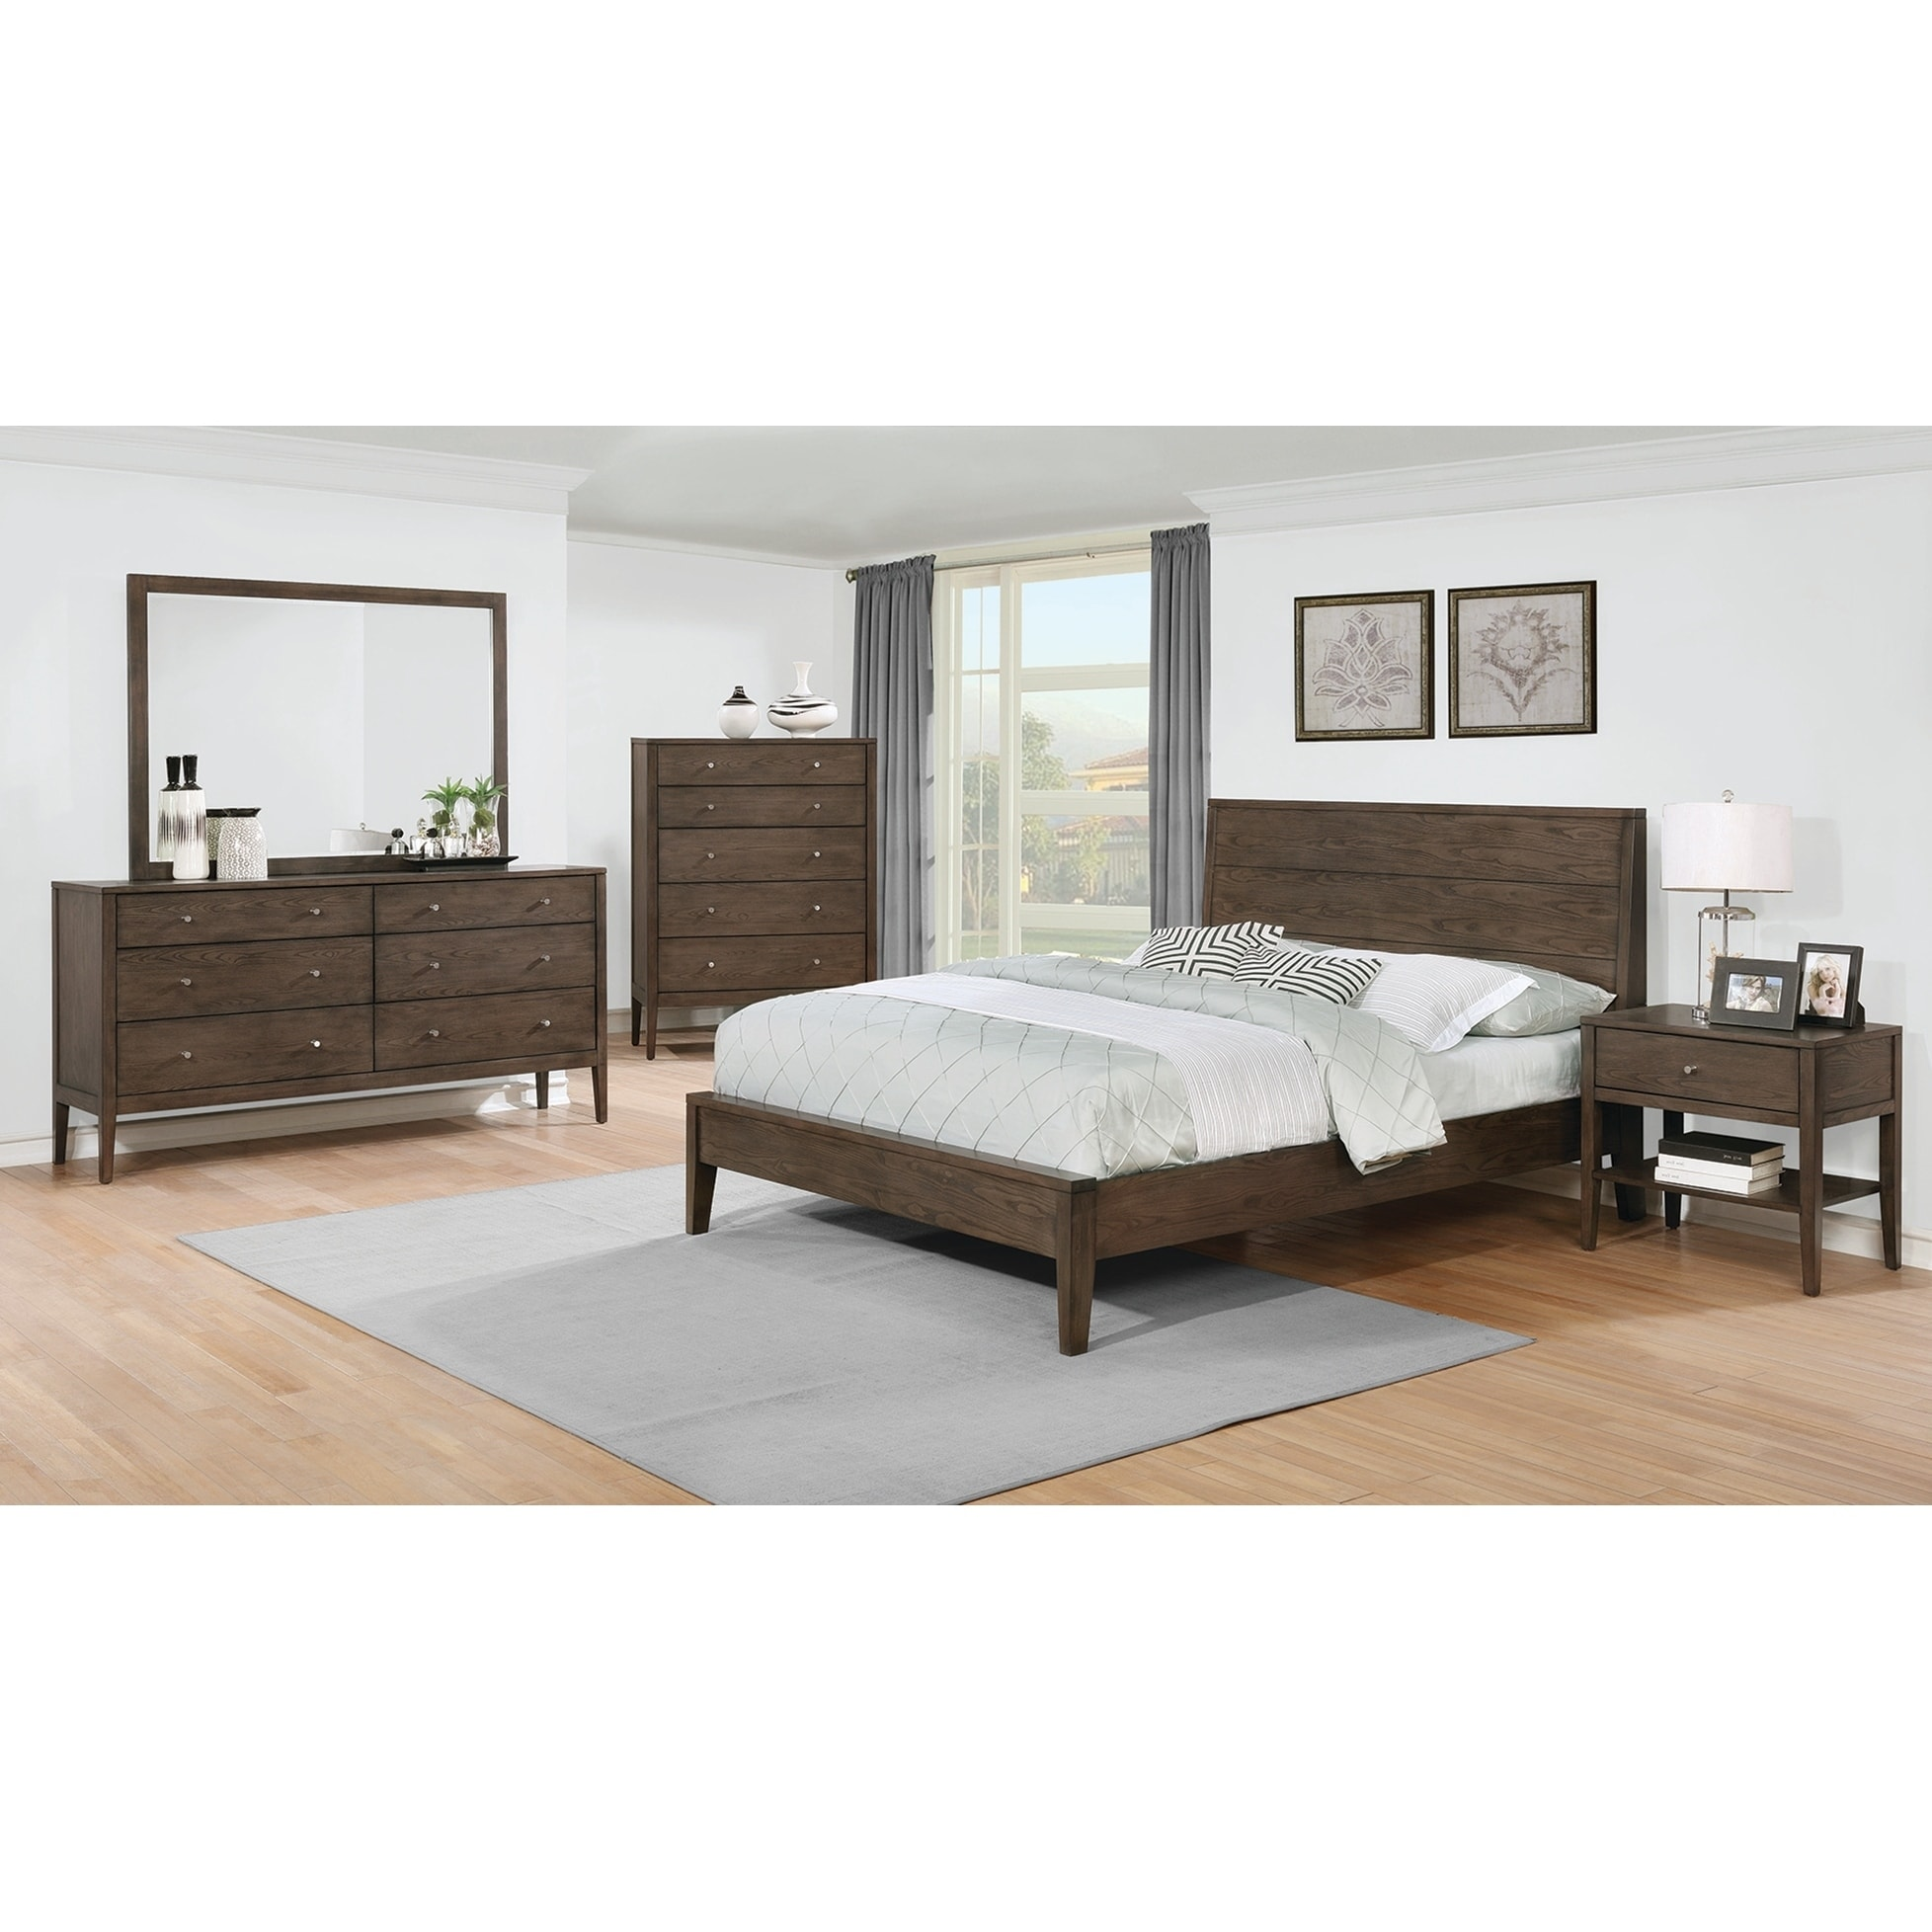 Shop Lubbock Mid Century Modern Brown Walnut 4 Piece Bedroom Set